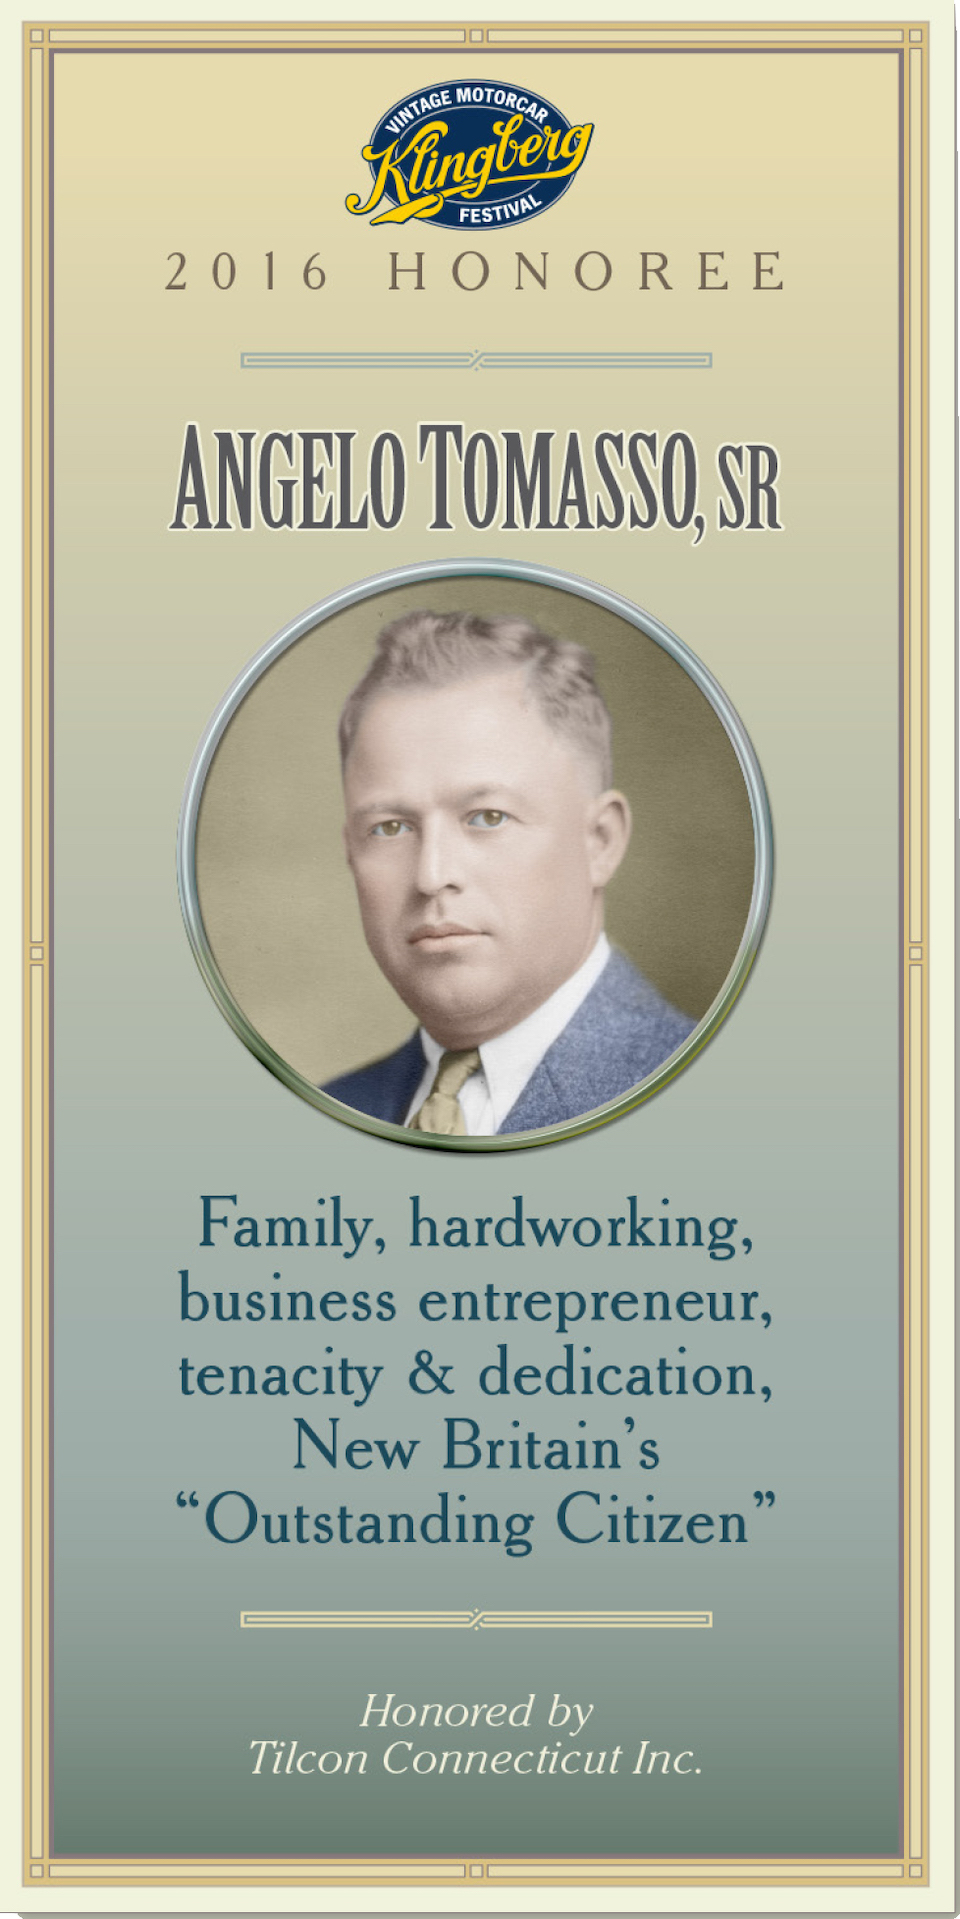 honor-angelo-tomasso-sr